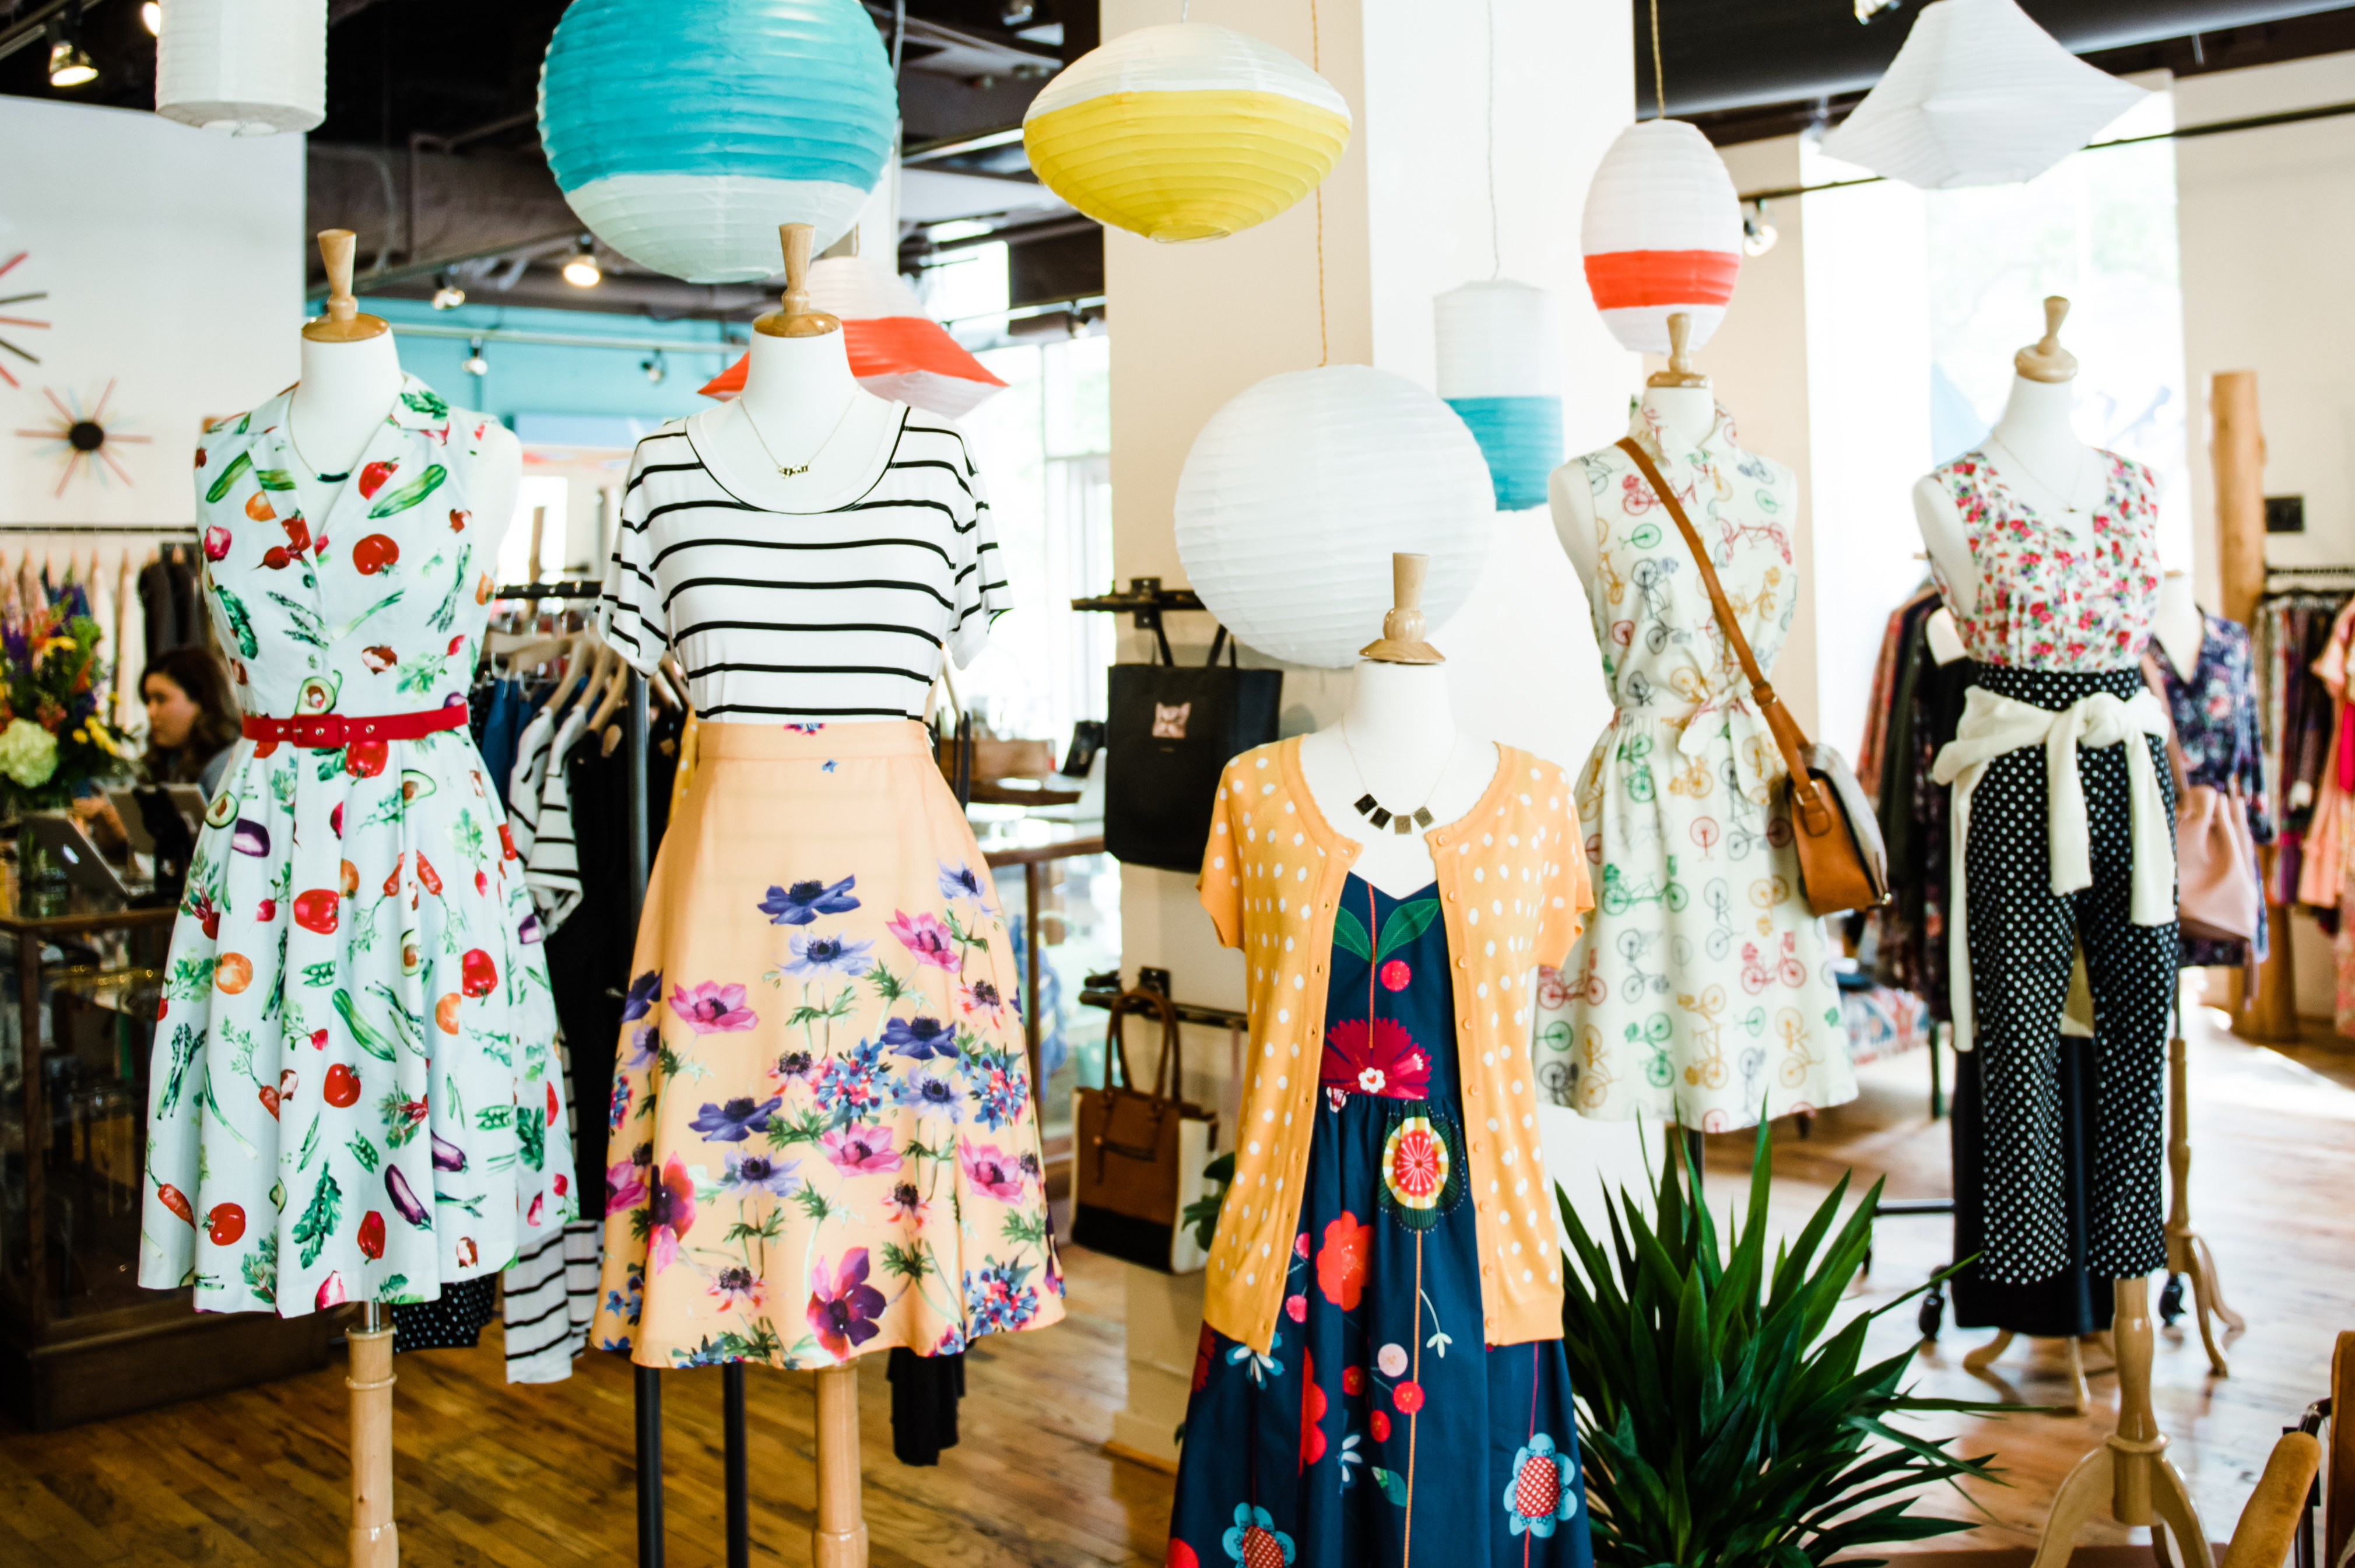 From browser to brick: What to expect from ModCloth's DC shop